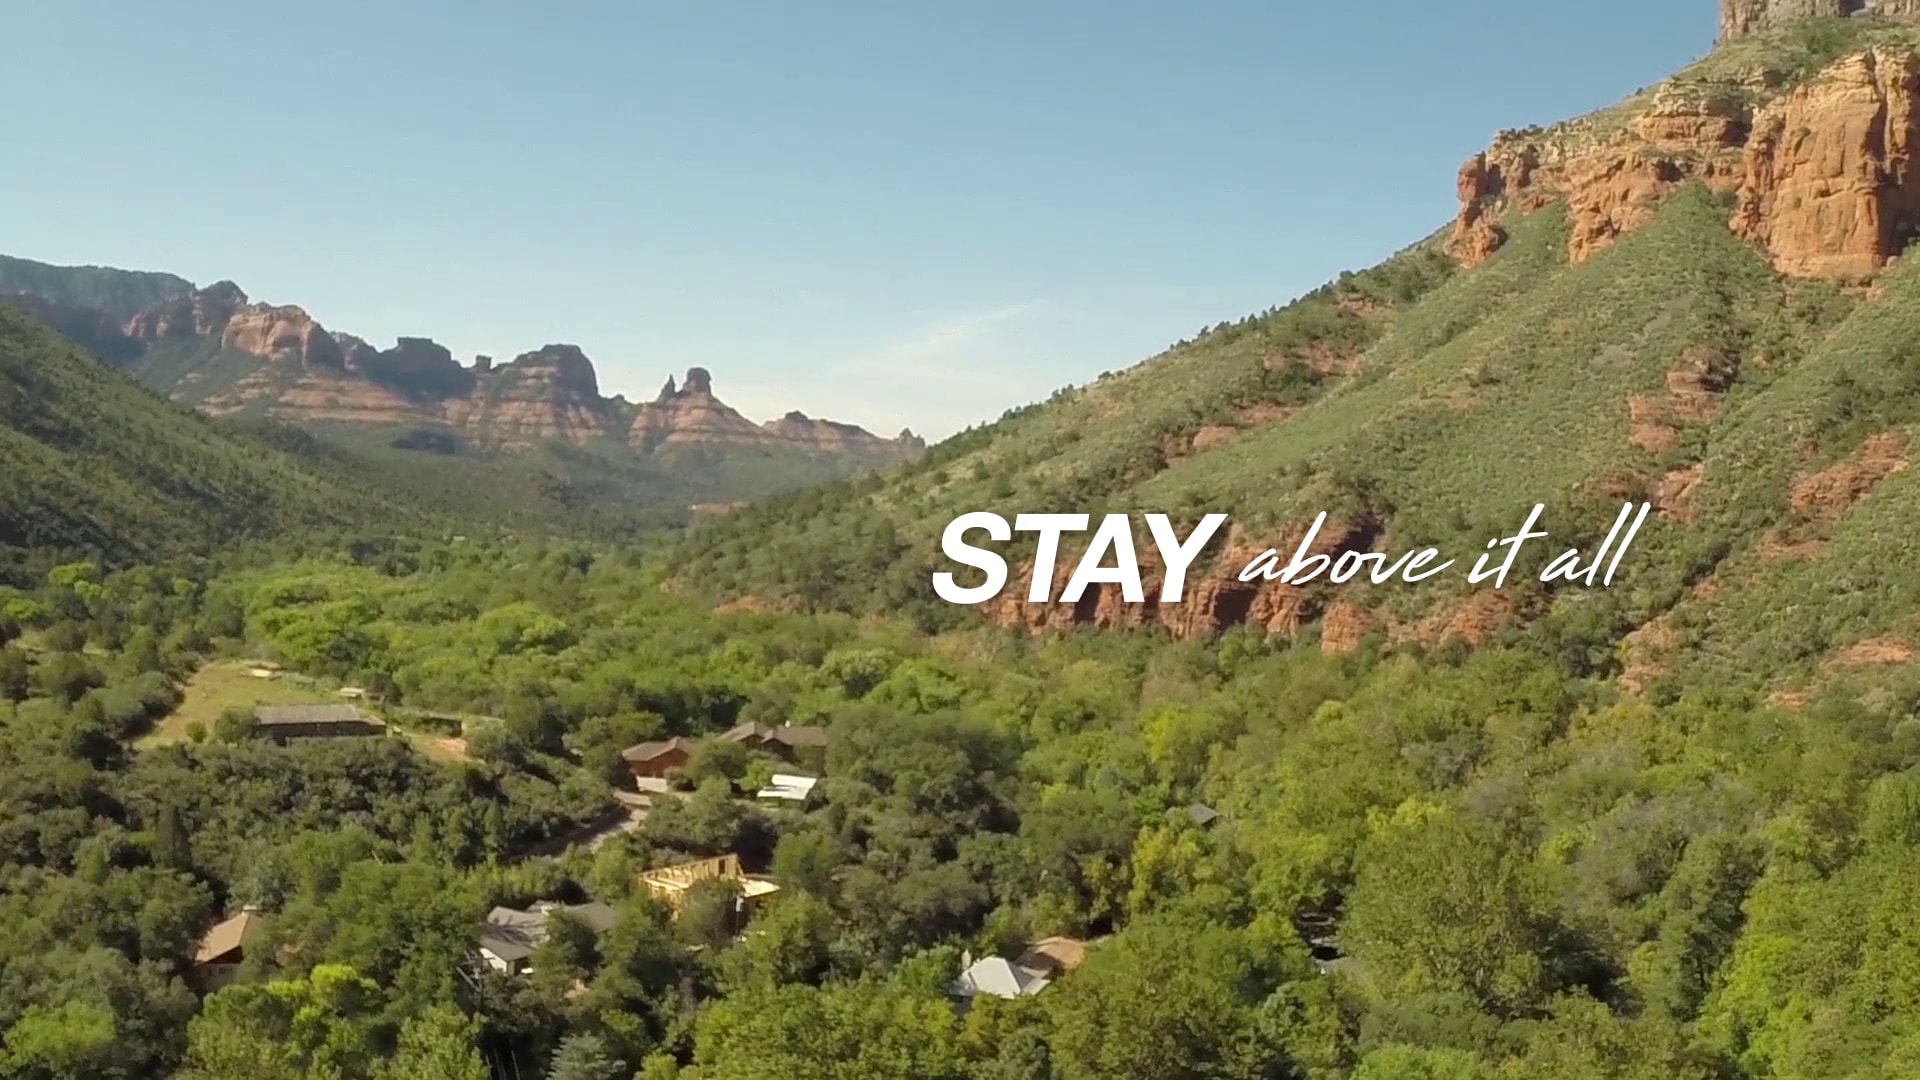 Welcome to the Sedona Vacation Villas in beautiful Sedona, Arizona.